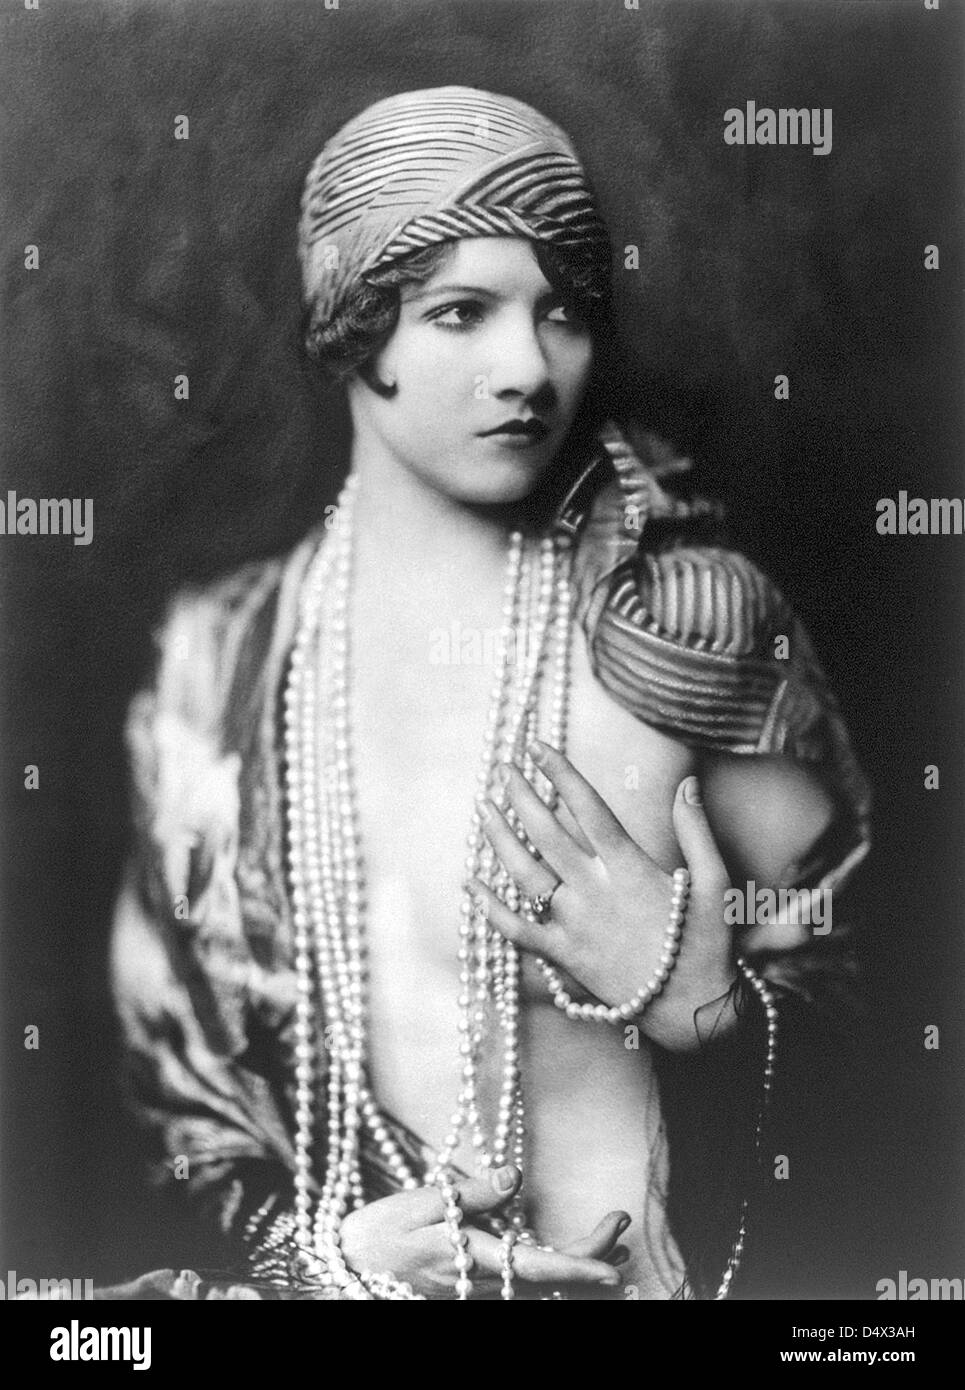 JEAN ACKERMAN  US film actress about 1930 when a member of the Ziegfeld Girls - Stock Image